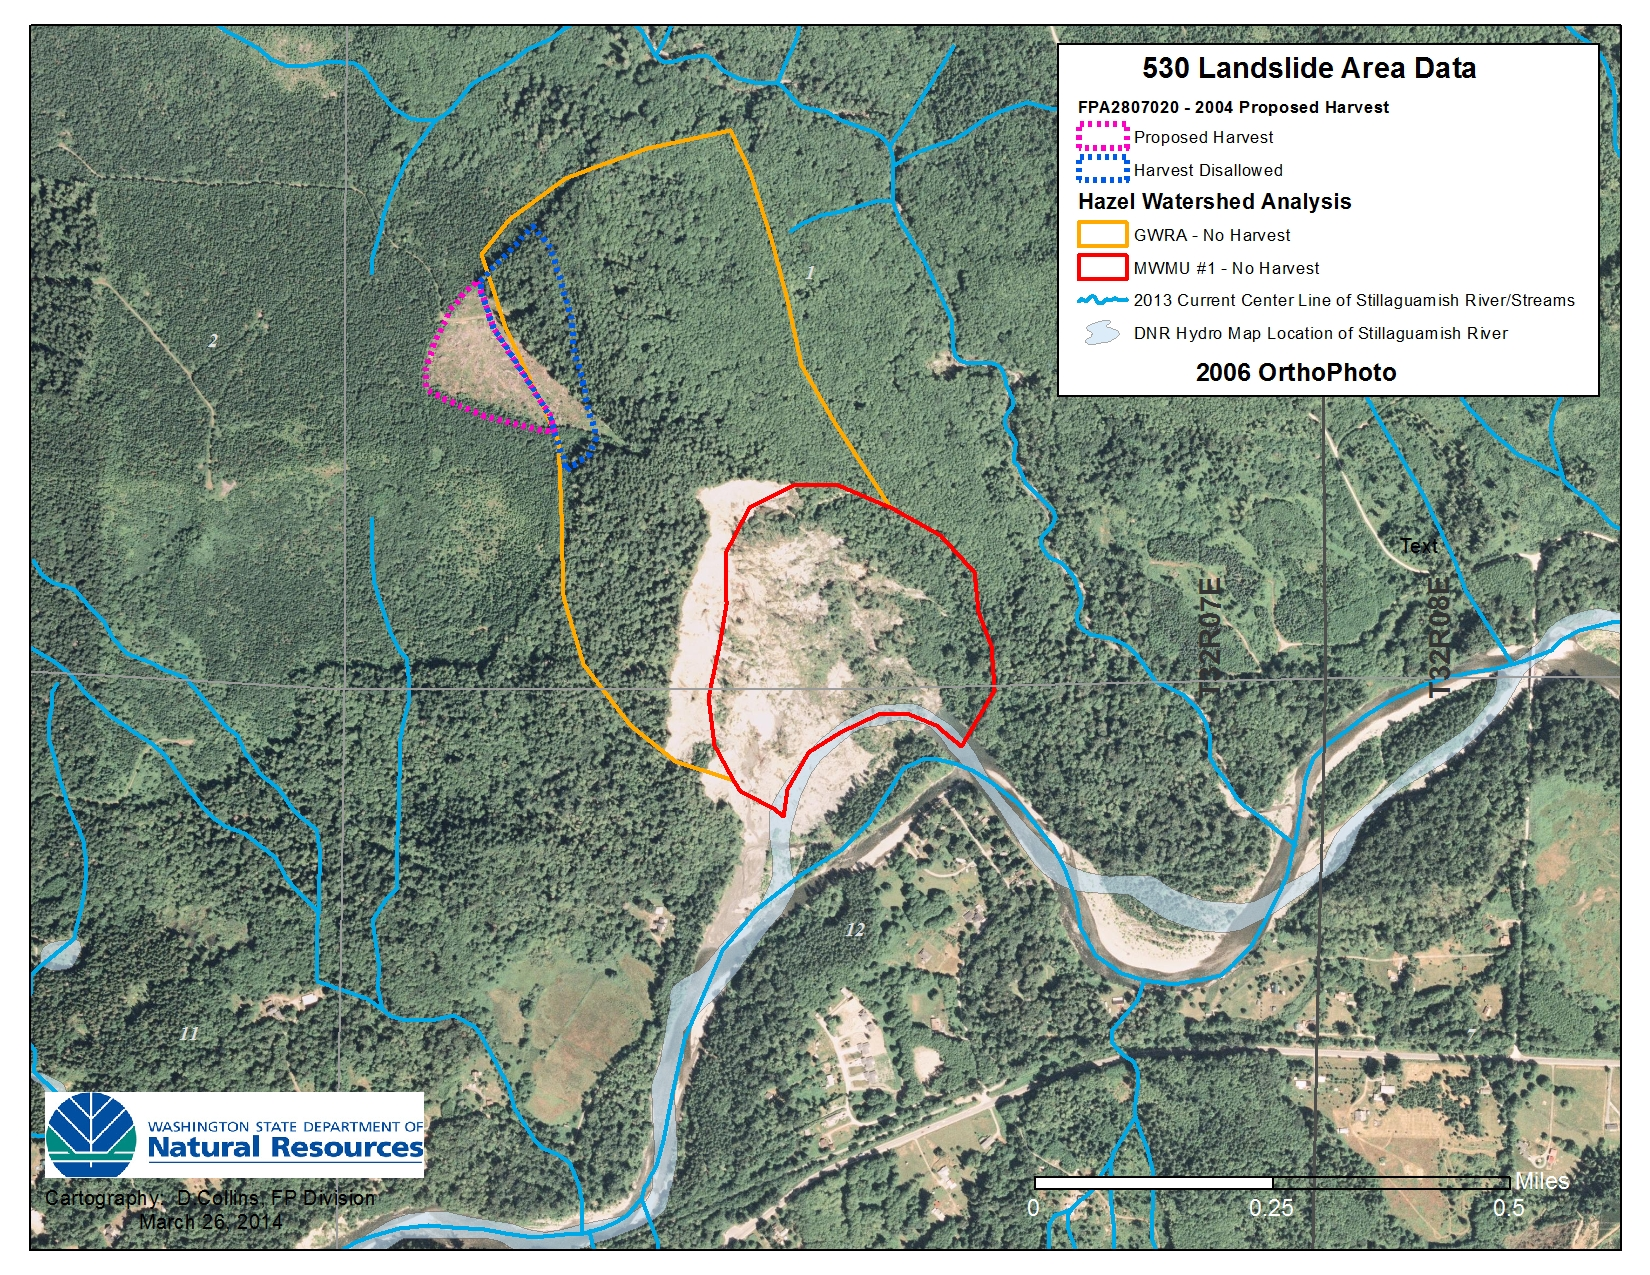 Oso Logger We Followed Rules Cut Edge Of Landslide Zone